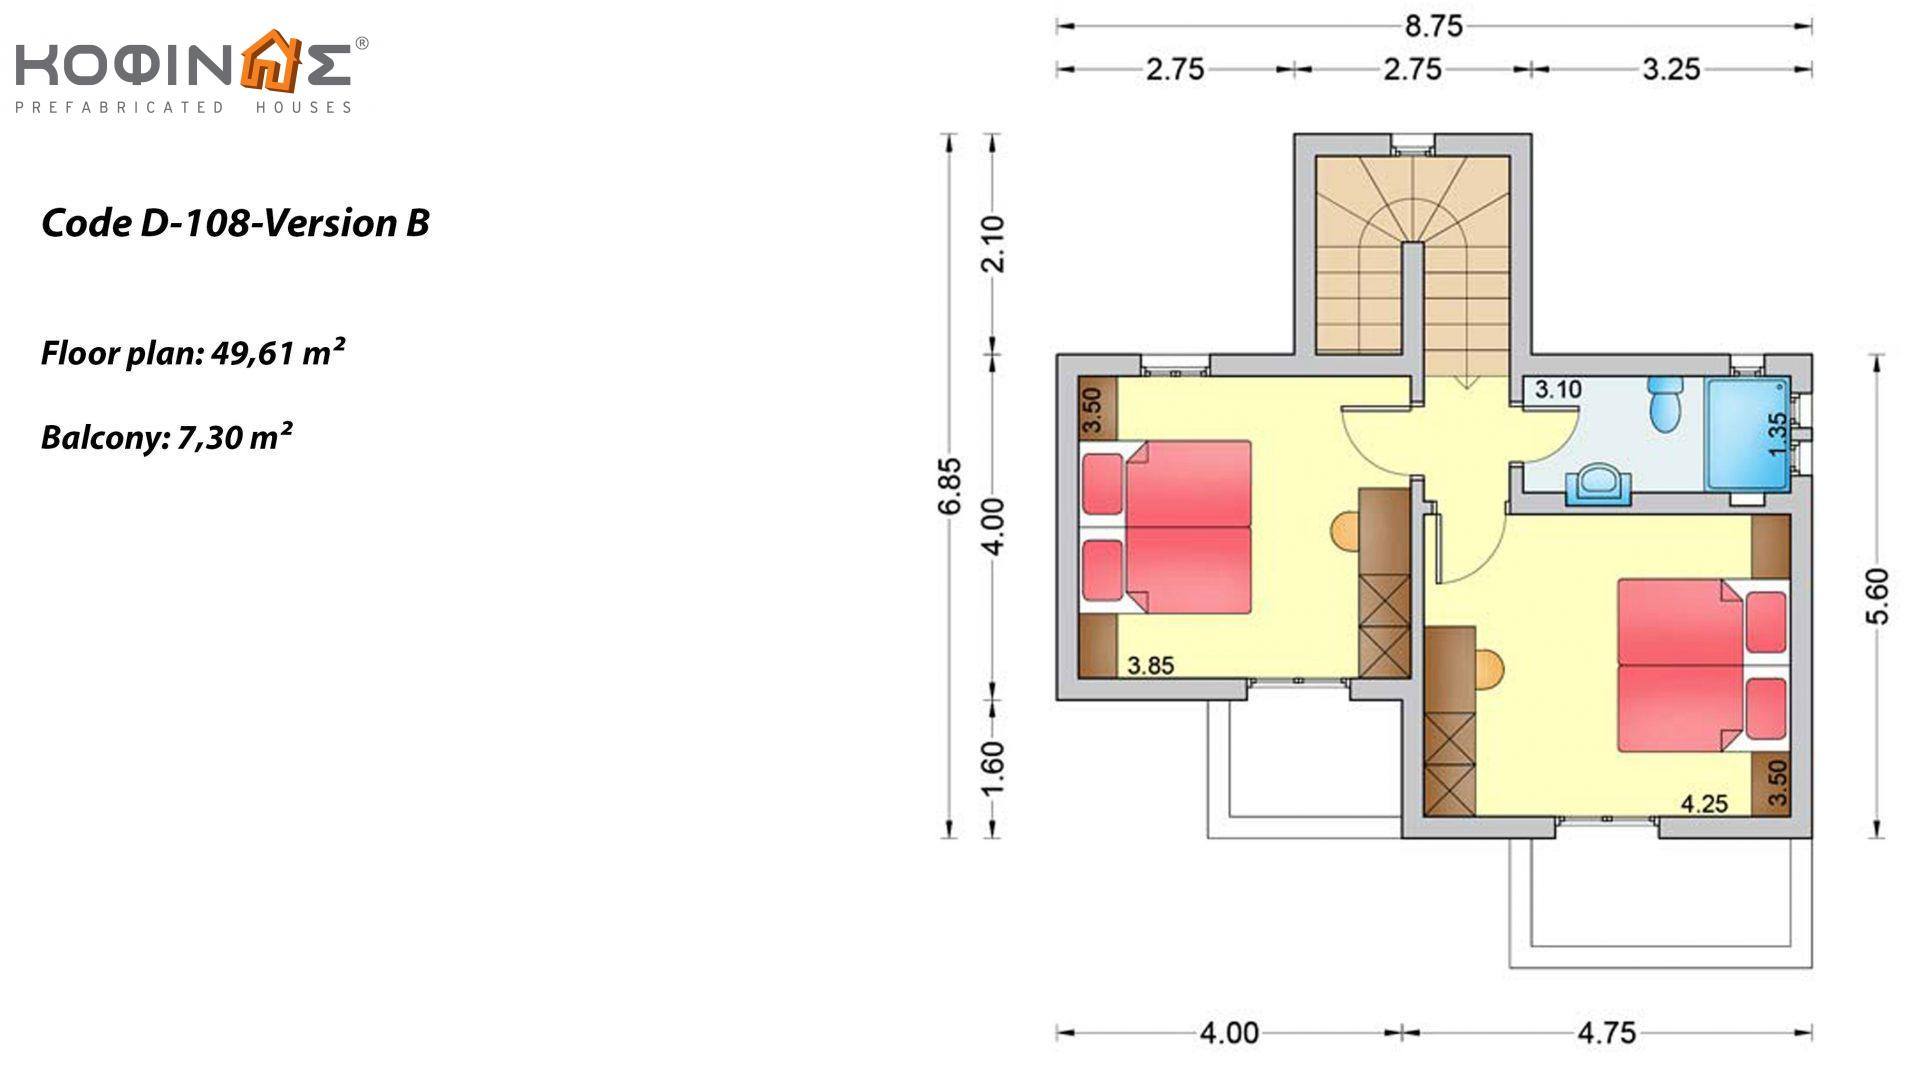 2-story house D-108, total surface of 108,07 m²,roofed areas 19.55 m²,balconies 7.30 m²